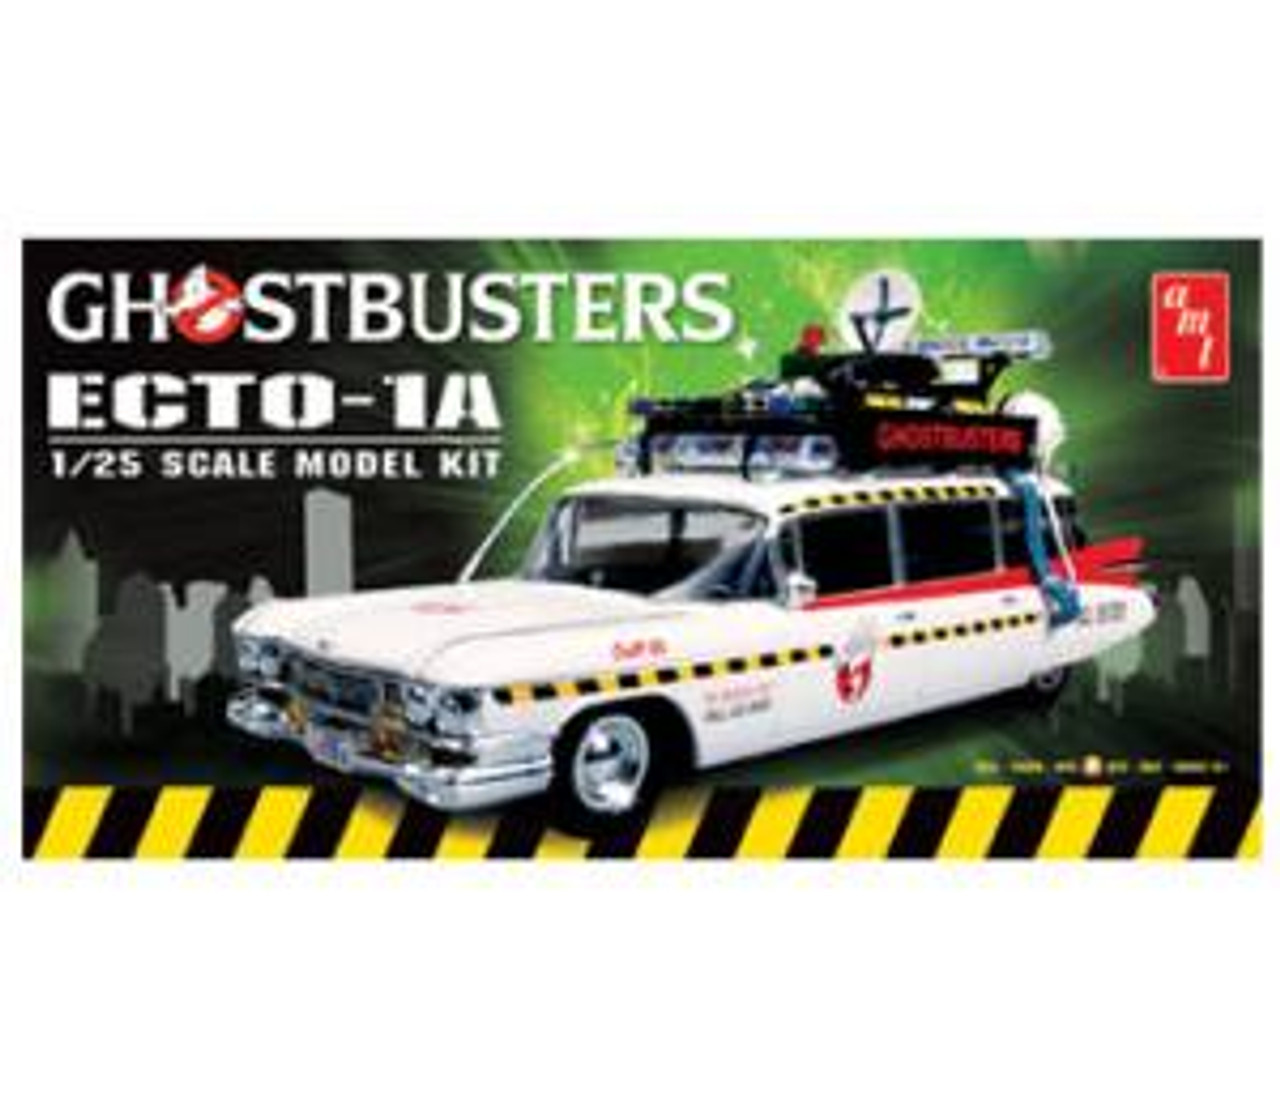 AMT750  1/25 Ghostbusters Ecto-1A